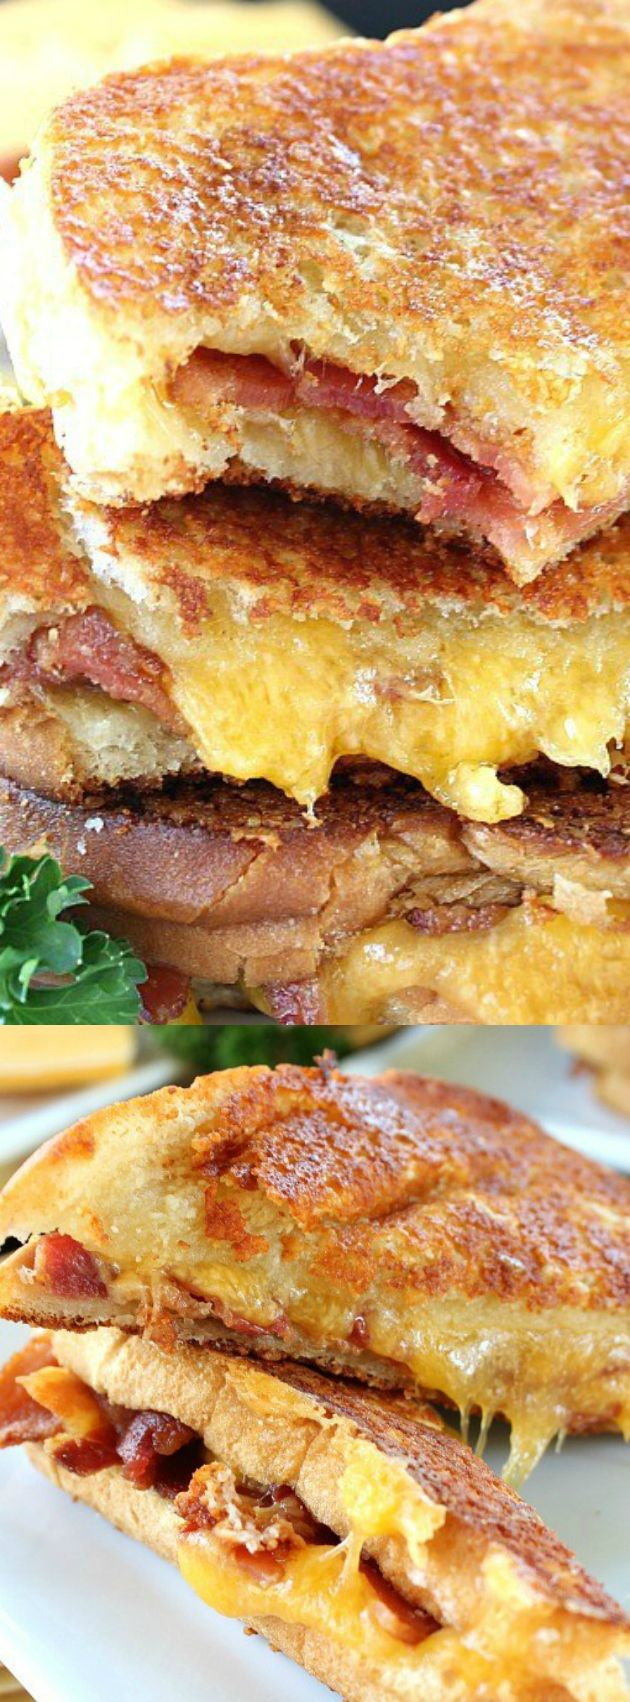 Here's a different take on a grilled cheese sandwich. This cheese toast bacon grilled cheese tastes great and is a good way to change up the standard grilled cheese.